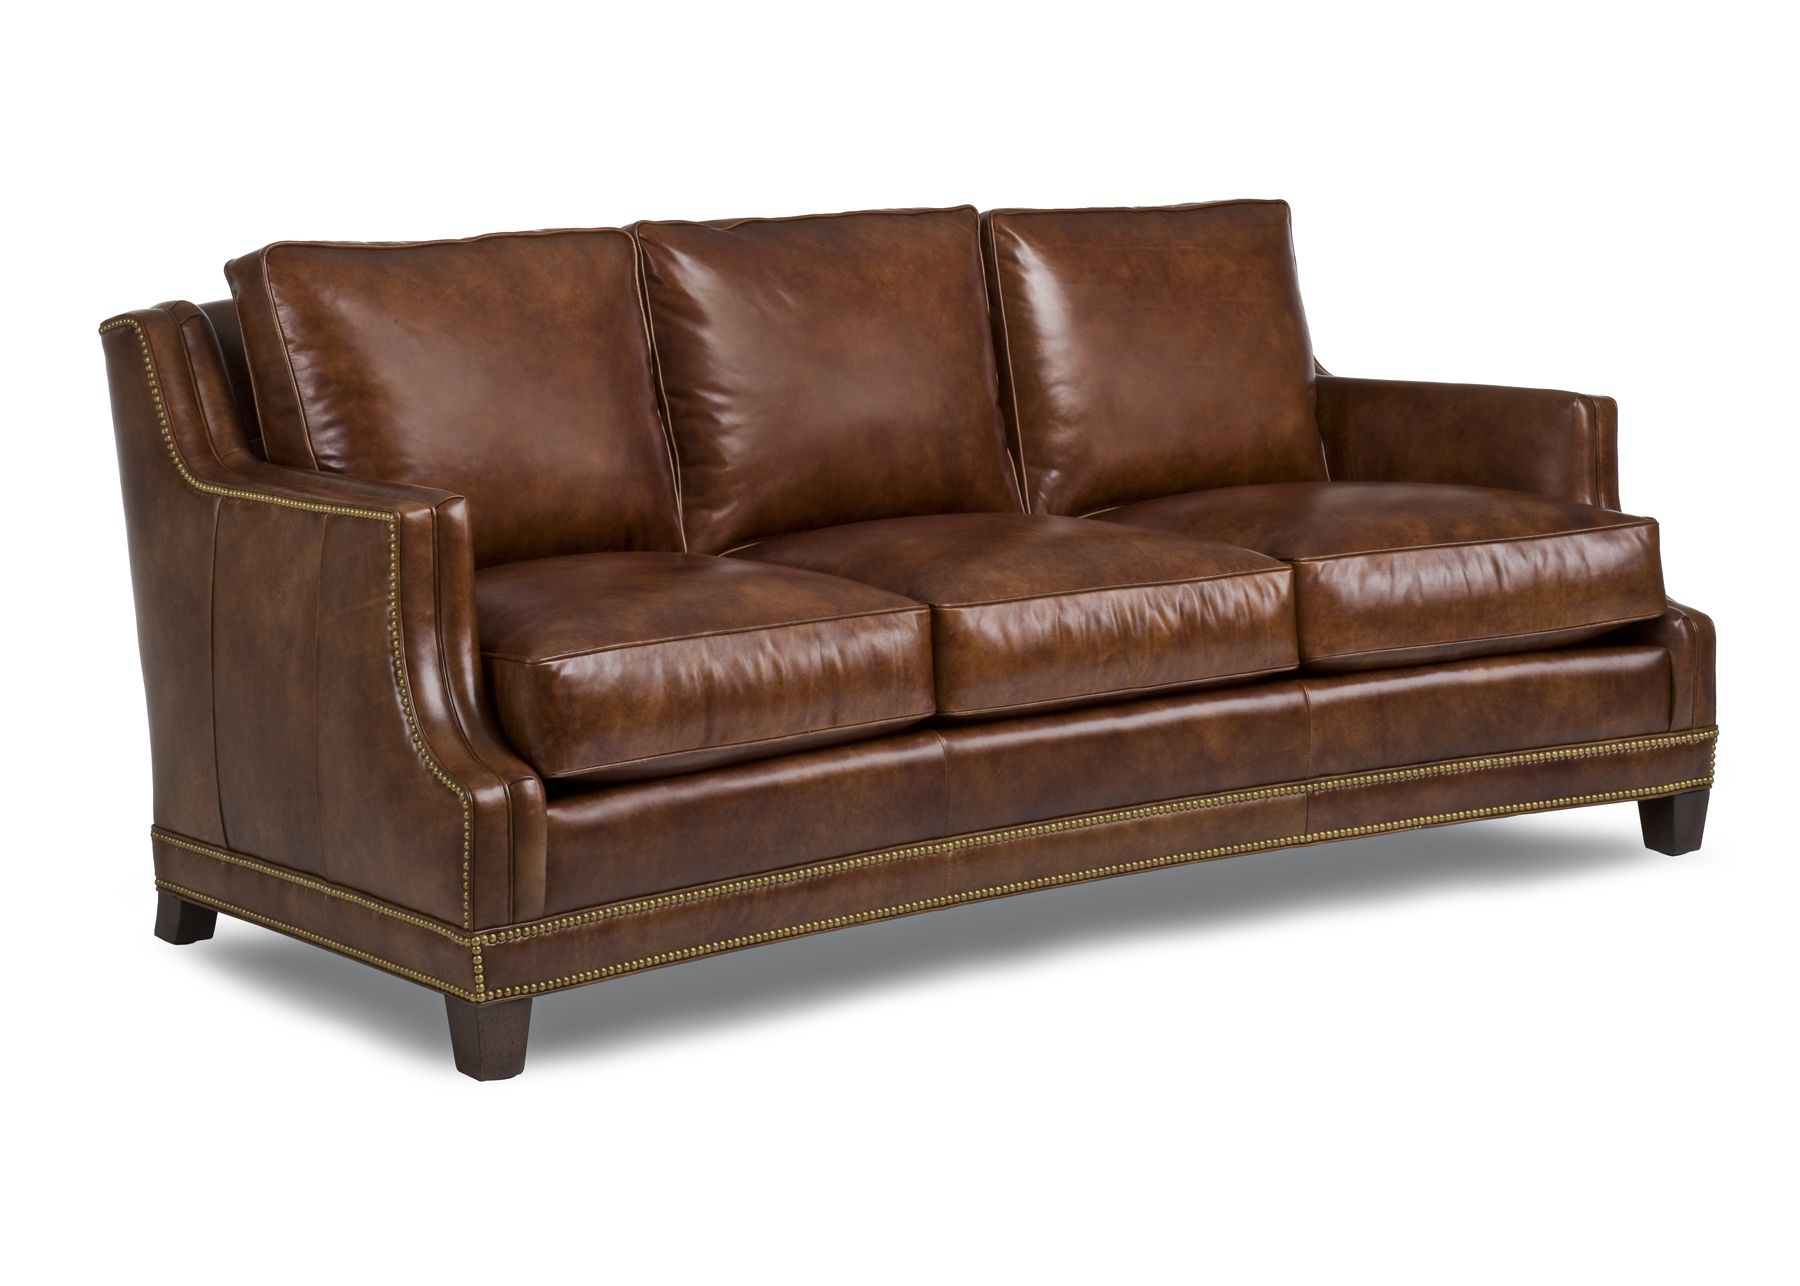 Handcrafted Furniture By Hancock And Moore Sofa North Carolina